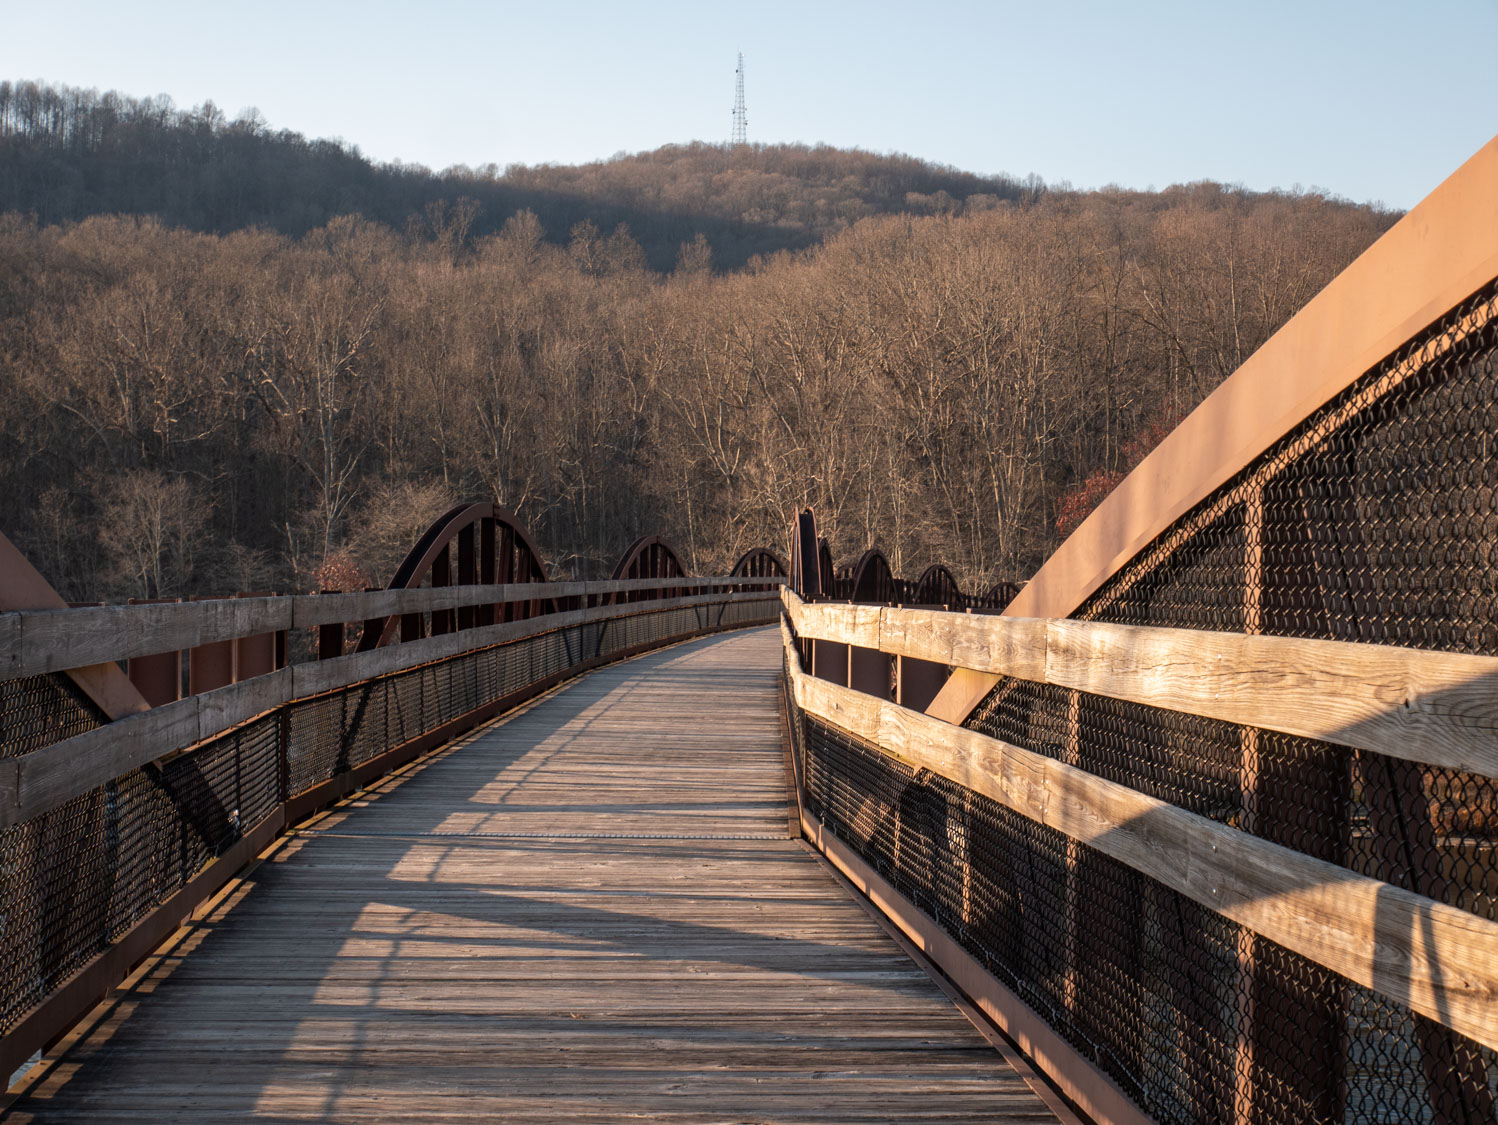 This old bridge is now part of the Alleghany Gap bike trail, and provides nice bike/pedestrian access to the Ferncliff peninsula